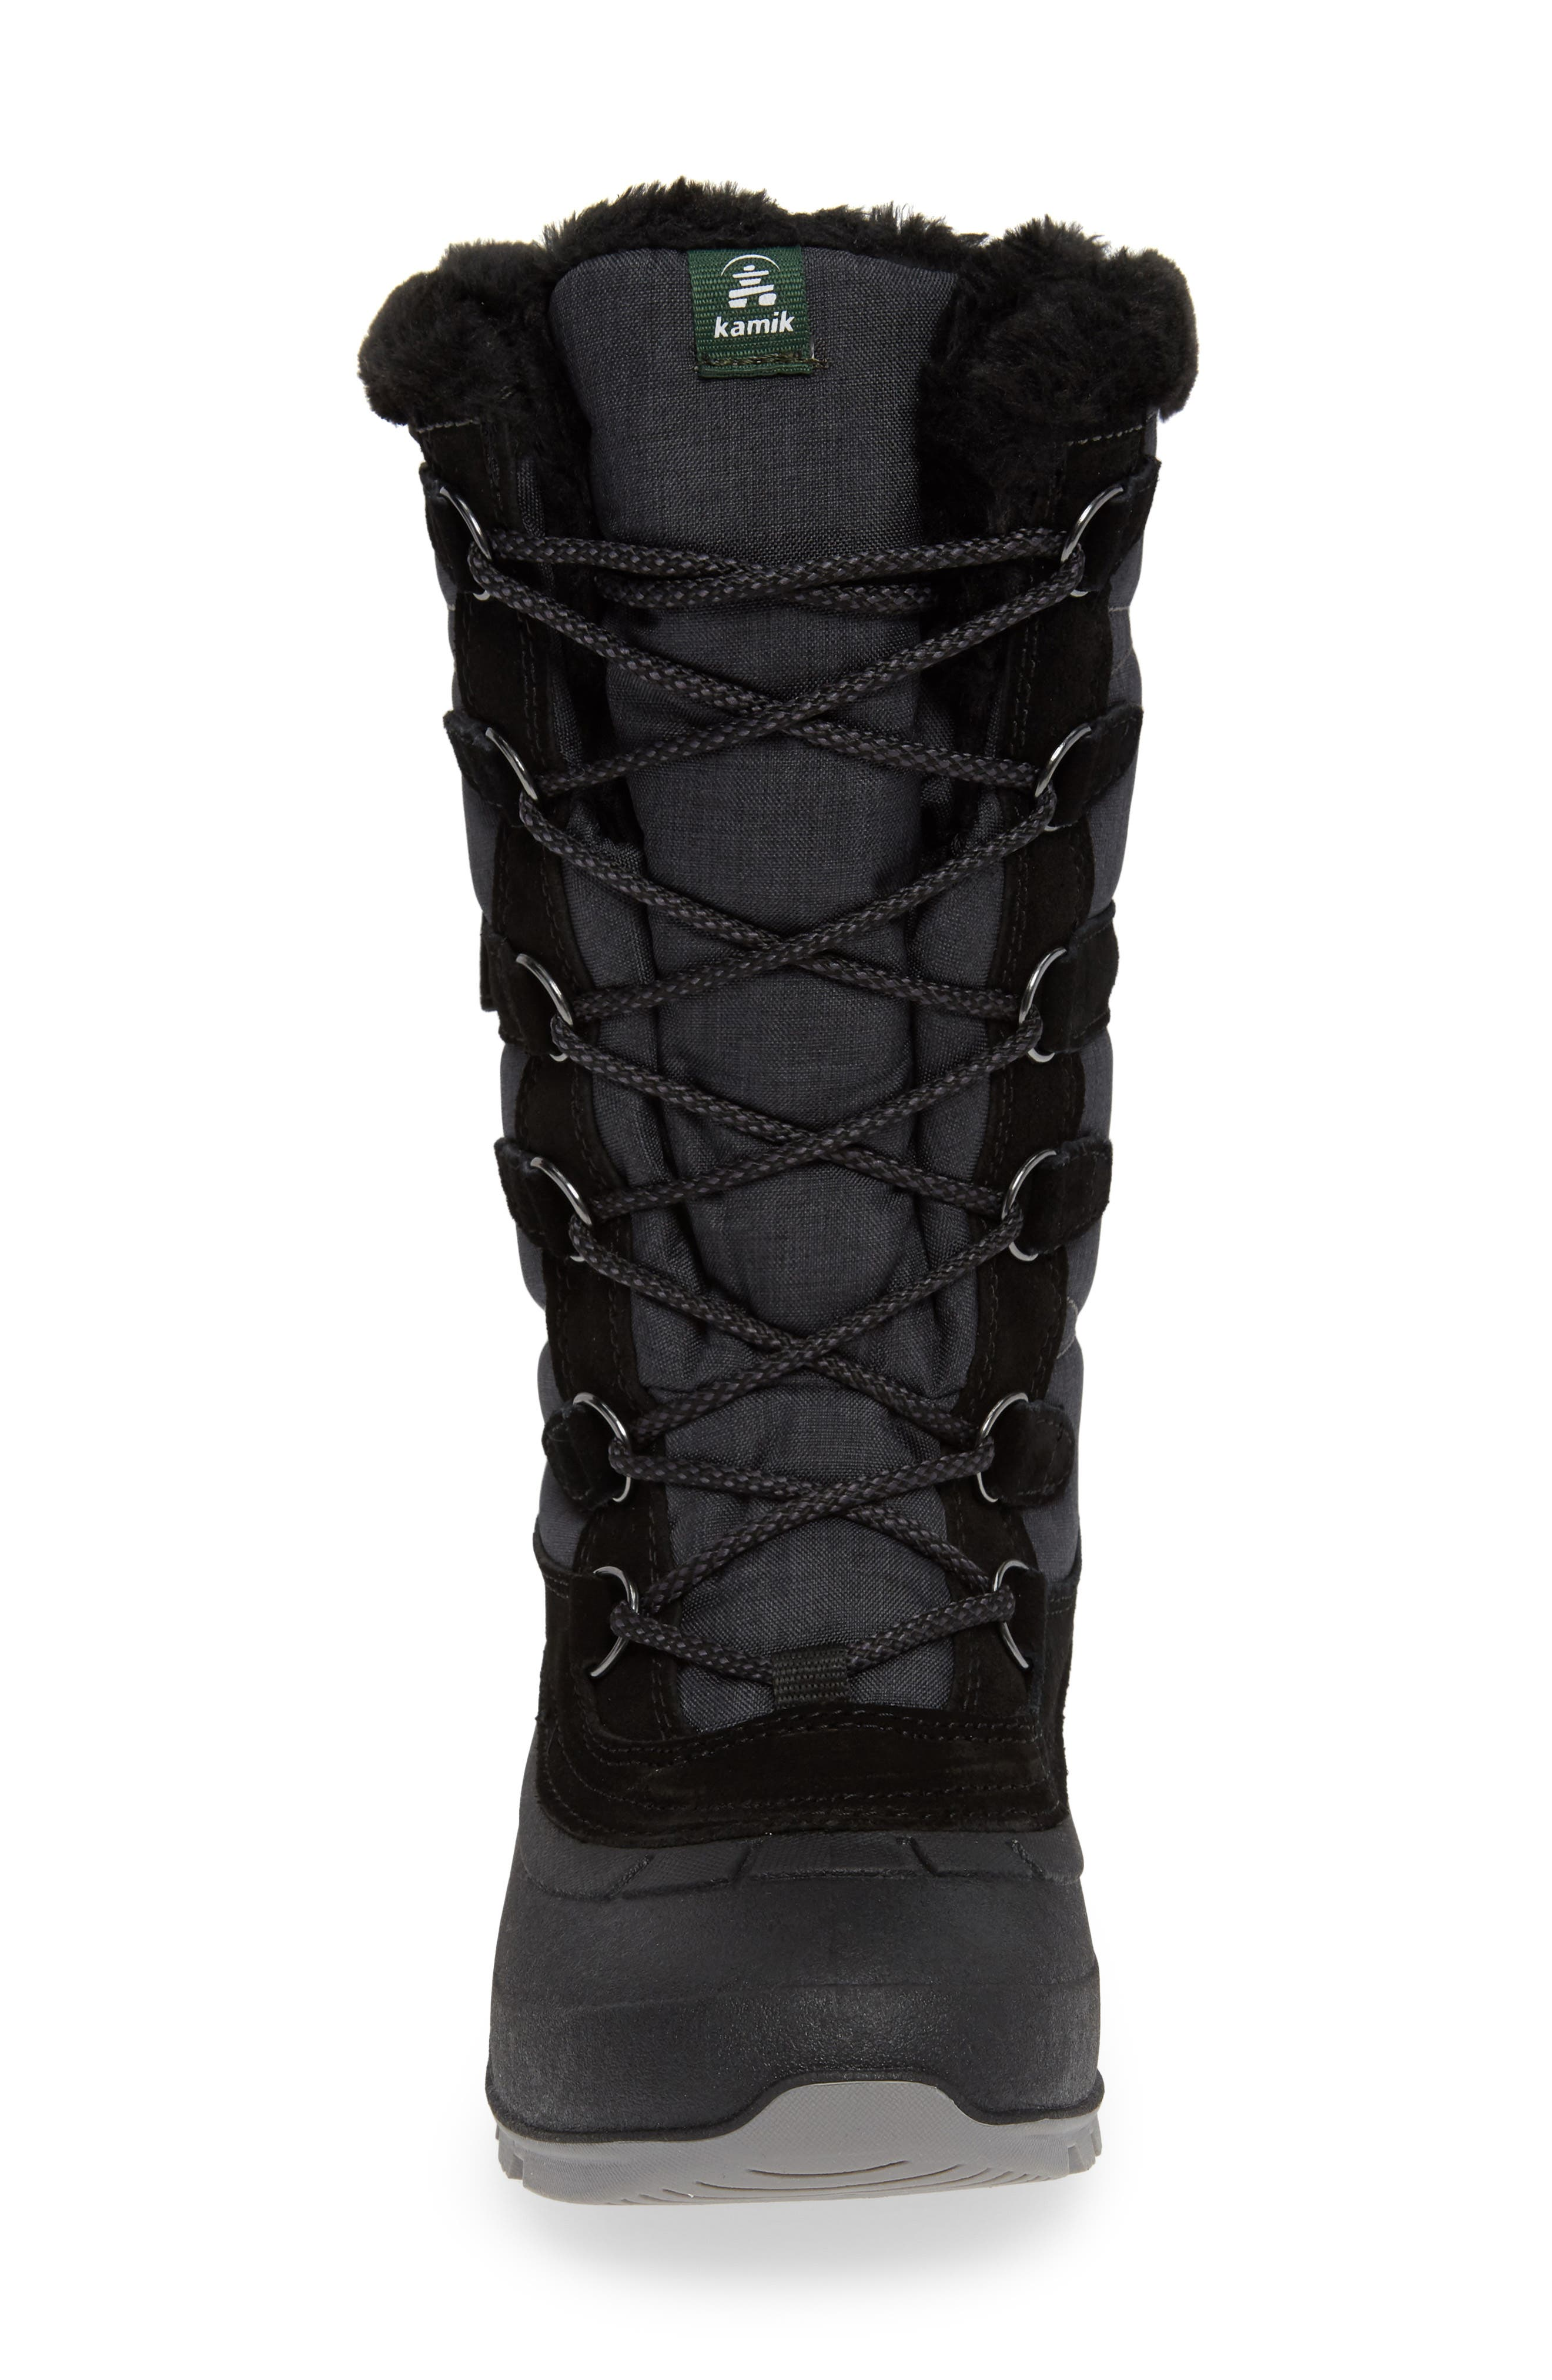 Snovalley2 Waterproof Thinsulate<sup>®</sup>-Insulated Snow Boot,                             Alternate thumbnail 4, color,                             BLACK